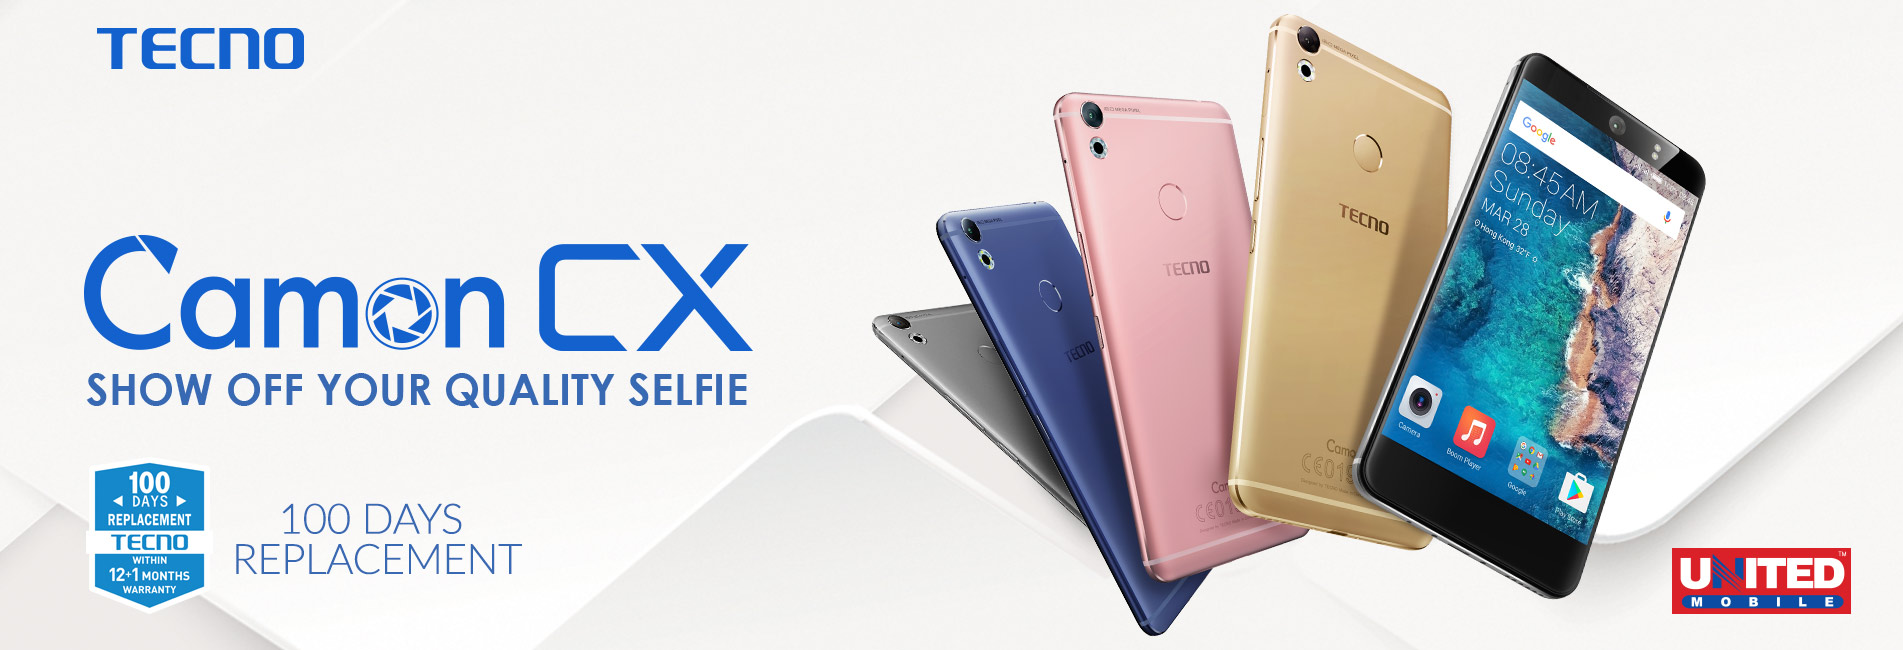 tecno-mobile-camon-cx-slider-banner-umpk